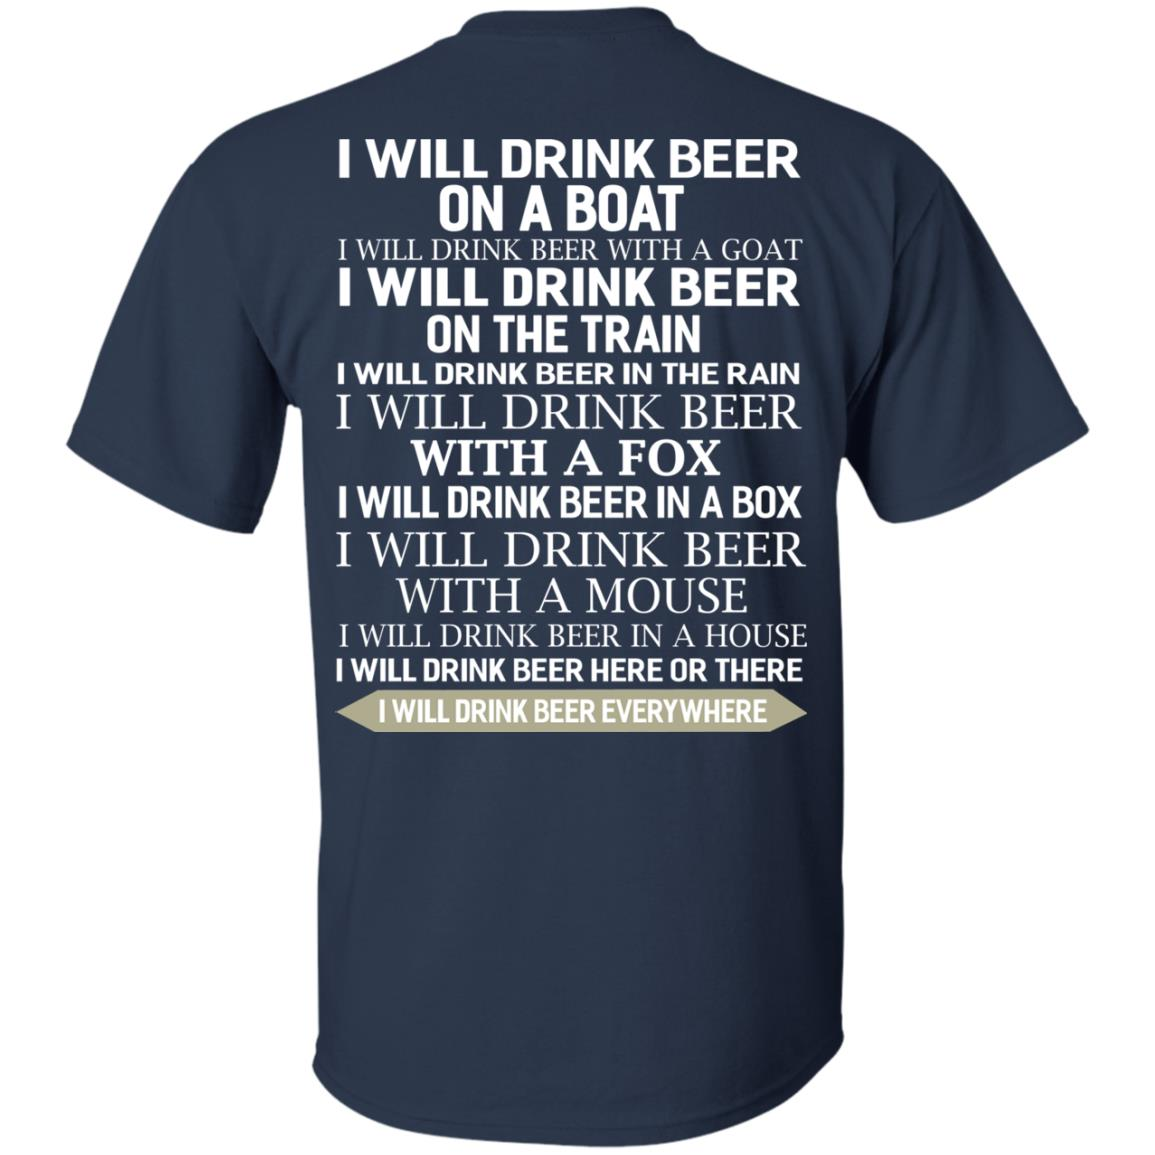 image 314 - I Will Drink Beer On a Boat I Will Drink Beer With a Goat Shirt